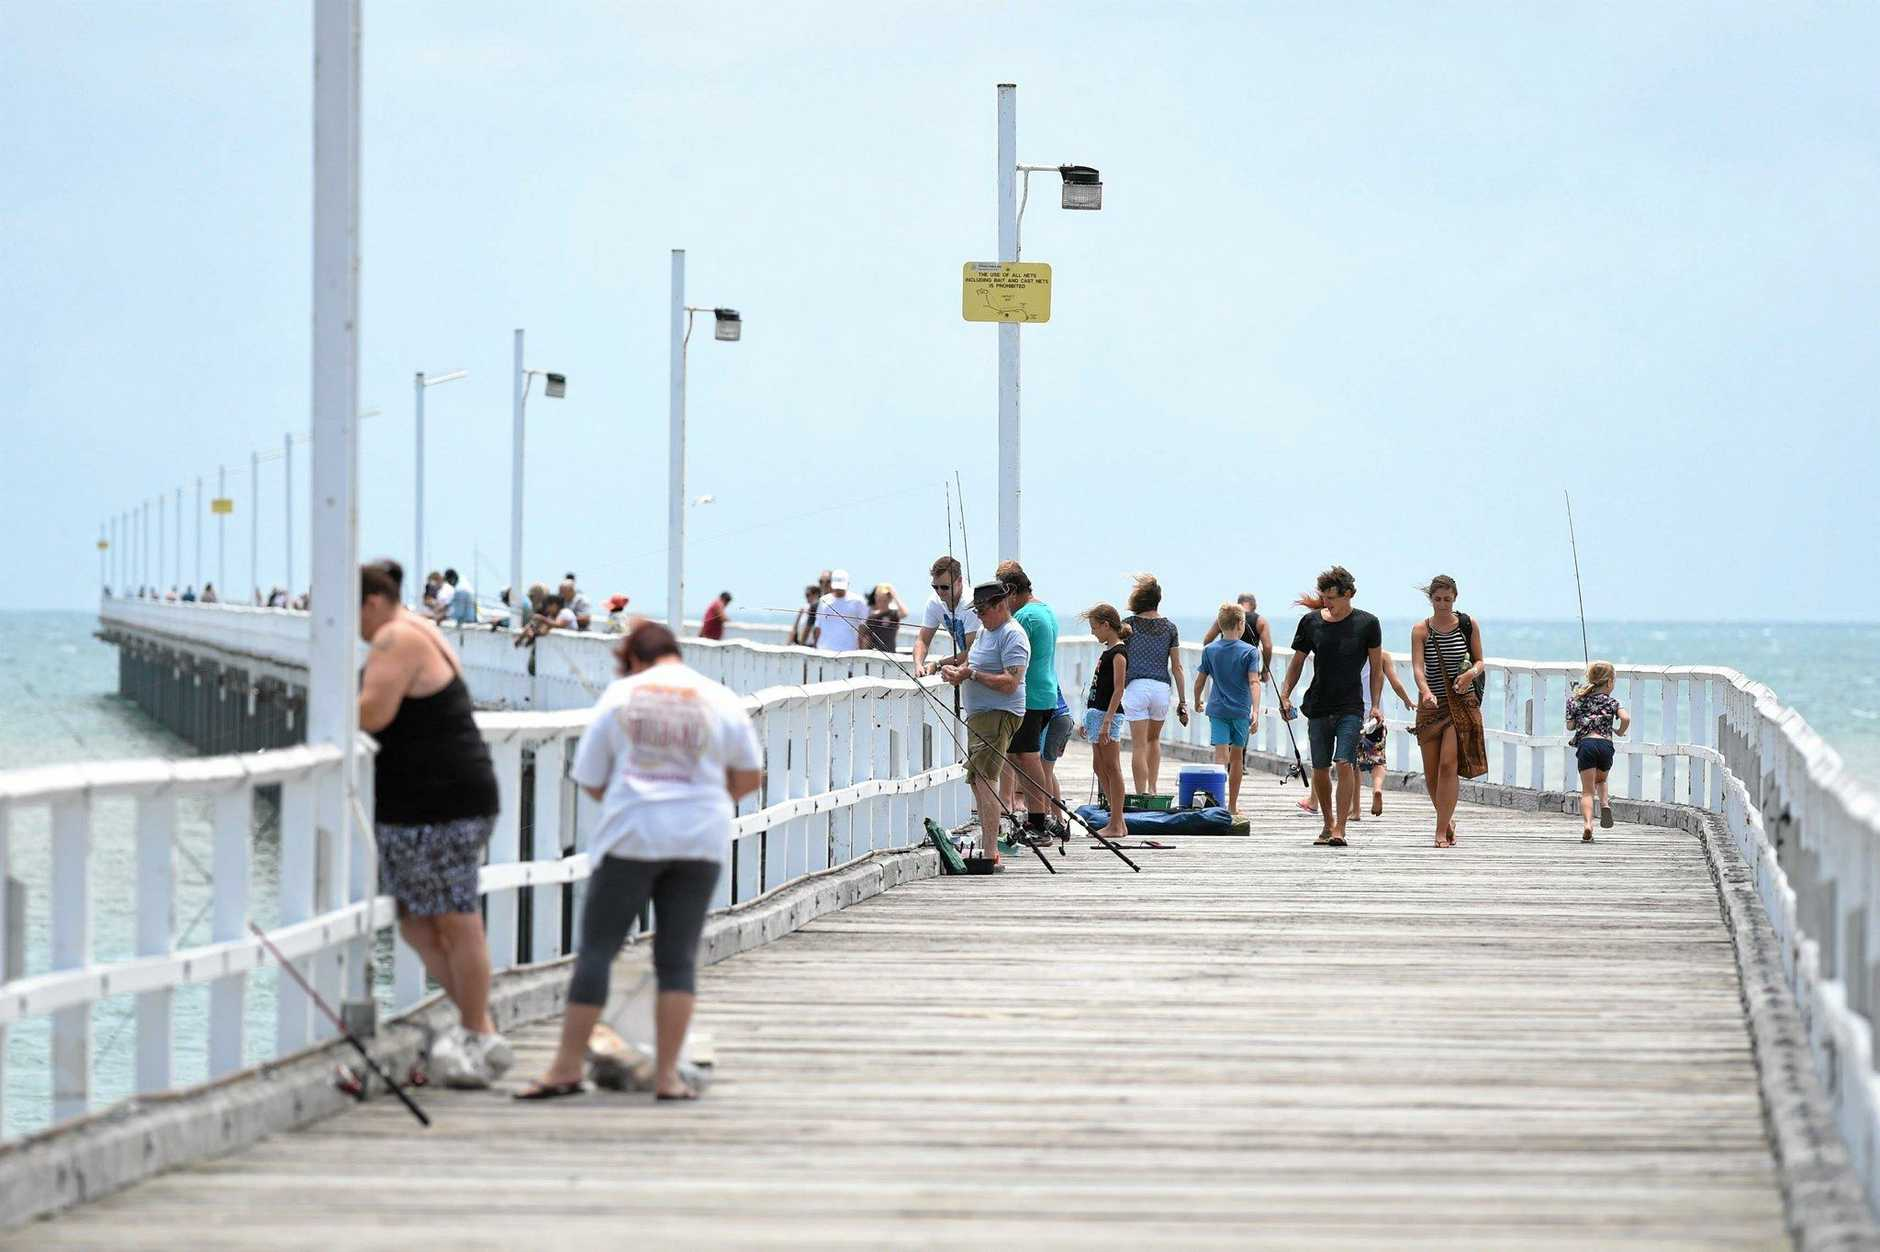 URANGAN PIER: The pier is already an attraction for fishermen and visitors, but one reader has proposed an artificial reef to add to the appeal.